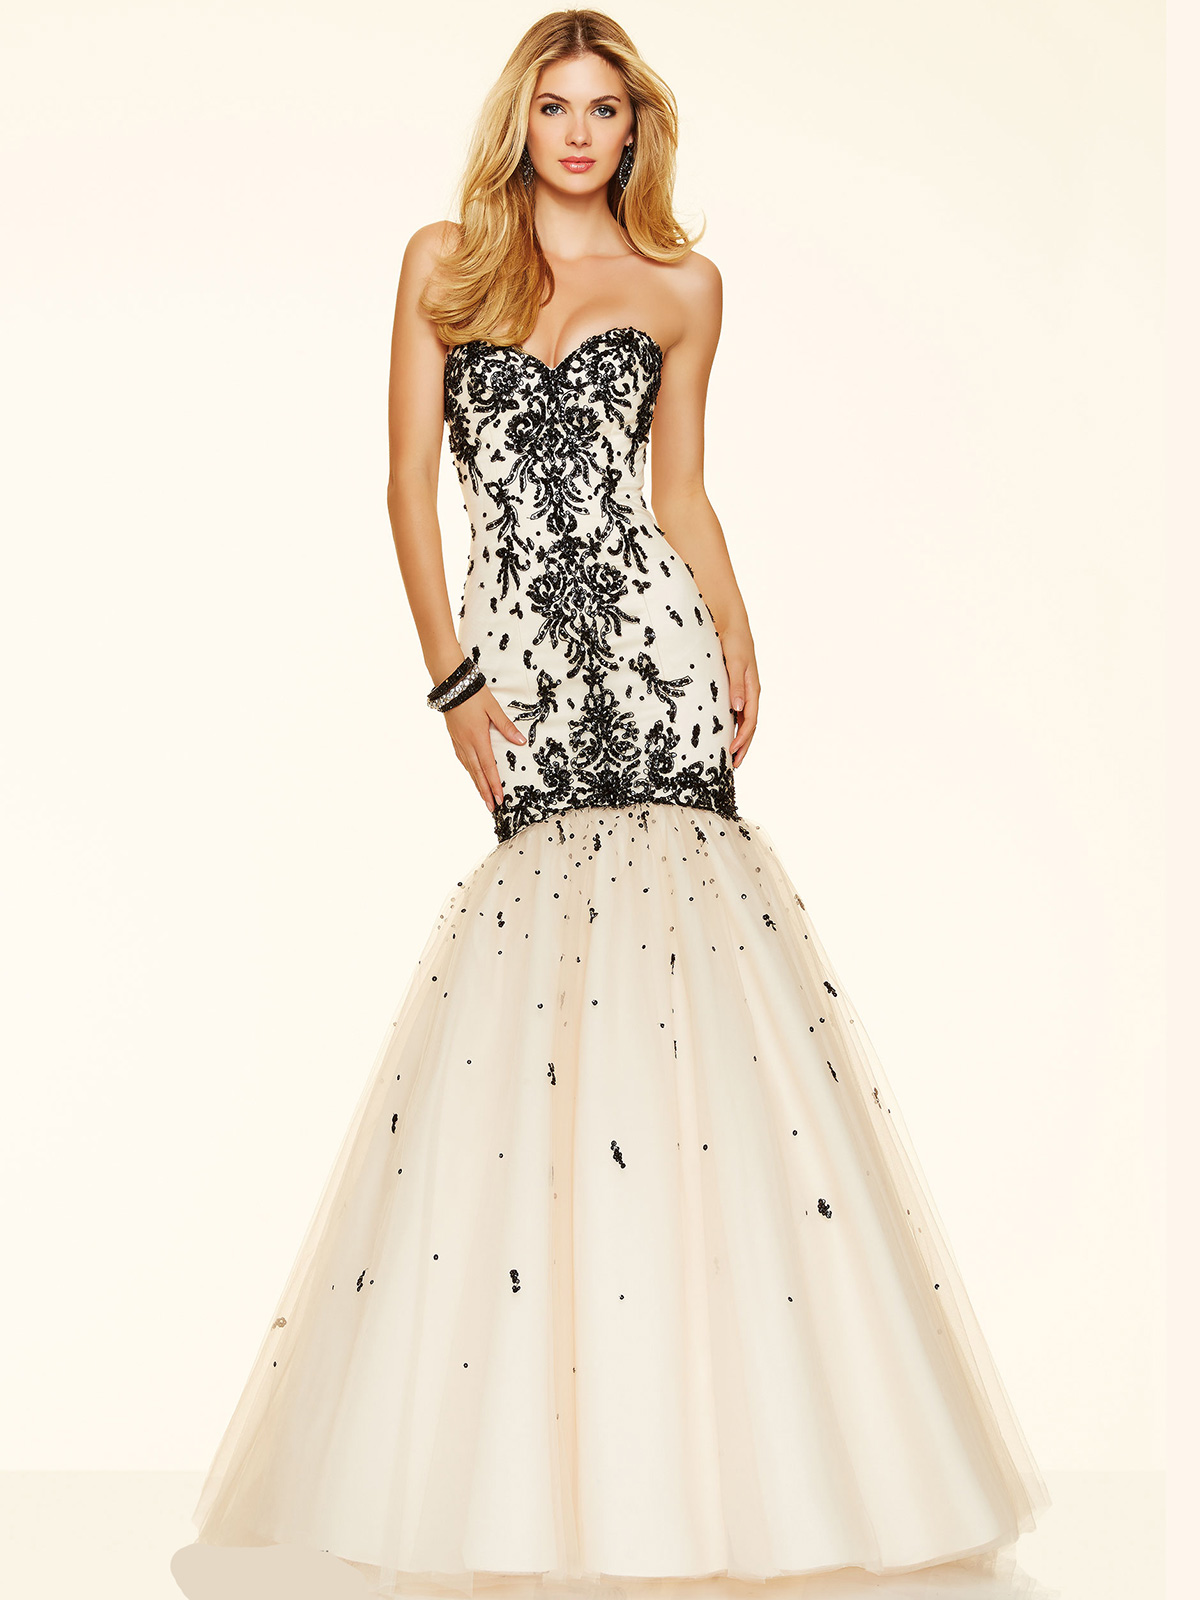 prom dresses in baton rouge - Dress Yp